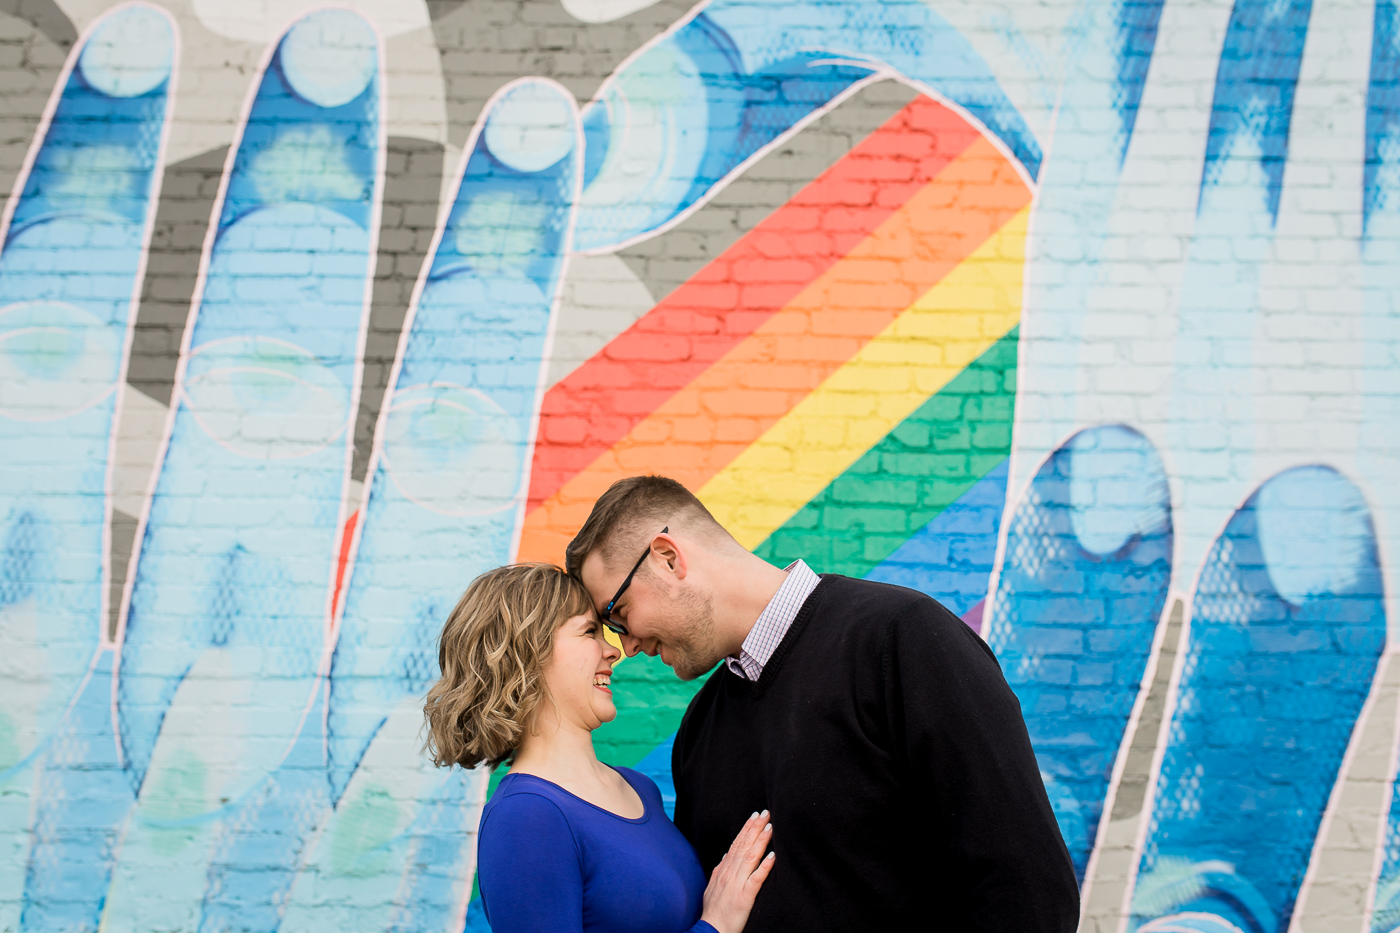 Chelsea & Tom   Downtown Laramie, Wyoming Engagement Session